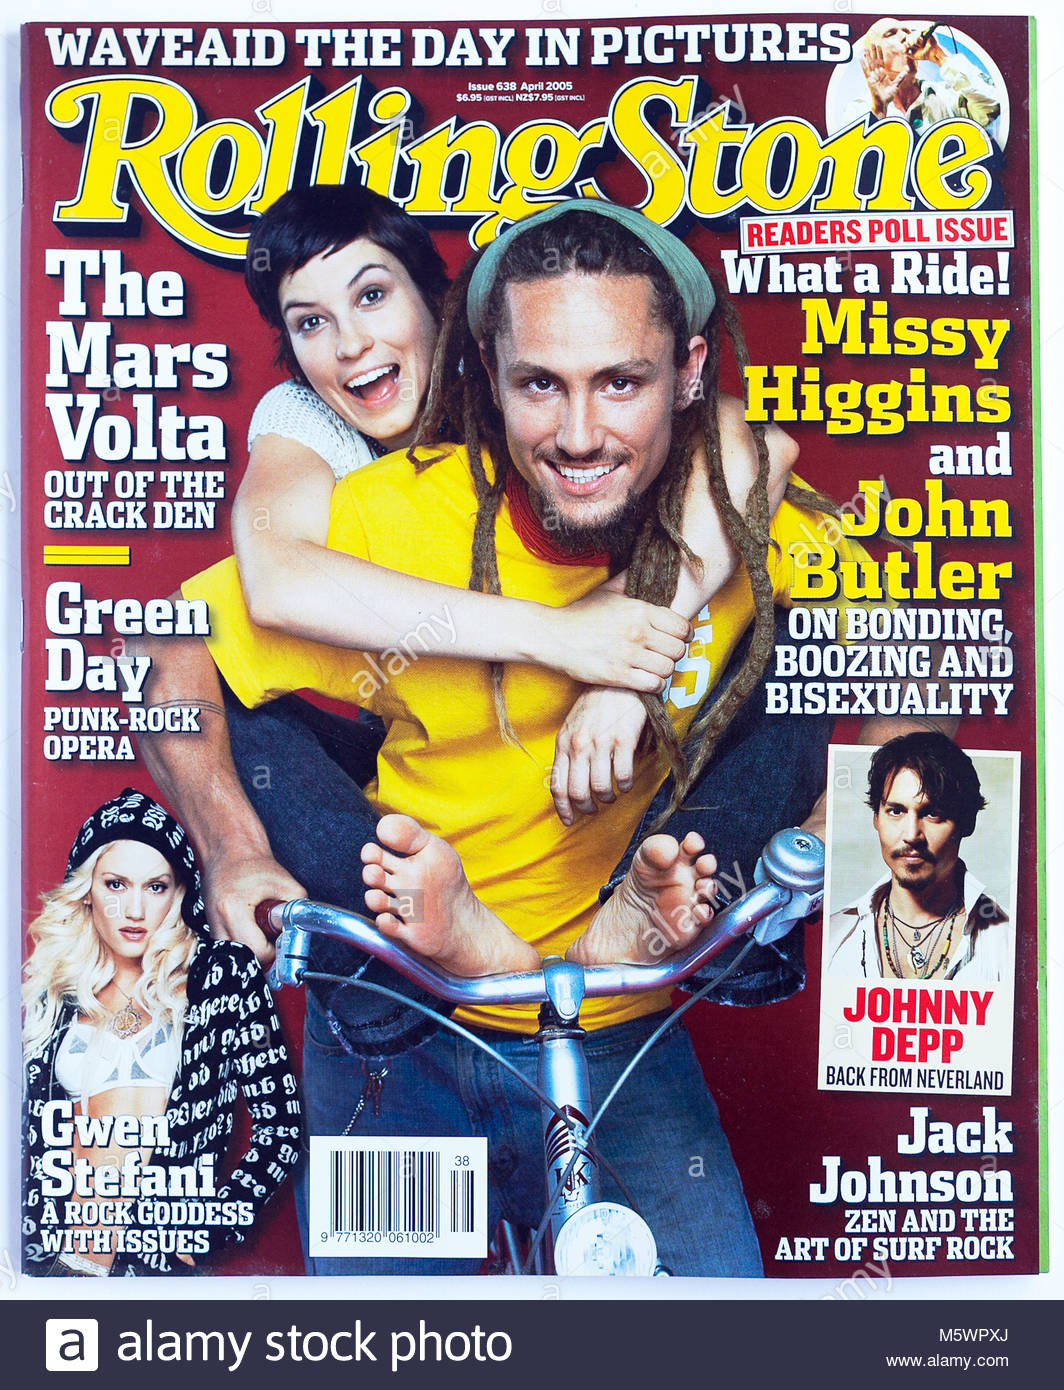 The cover of Rolling Stone magazine, issue 638, Missy Higgins and John Butler - Stock Image